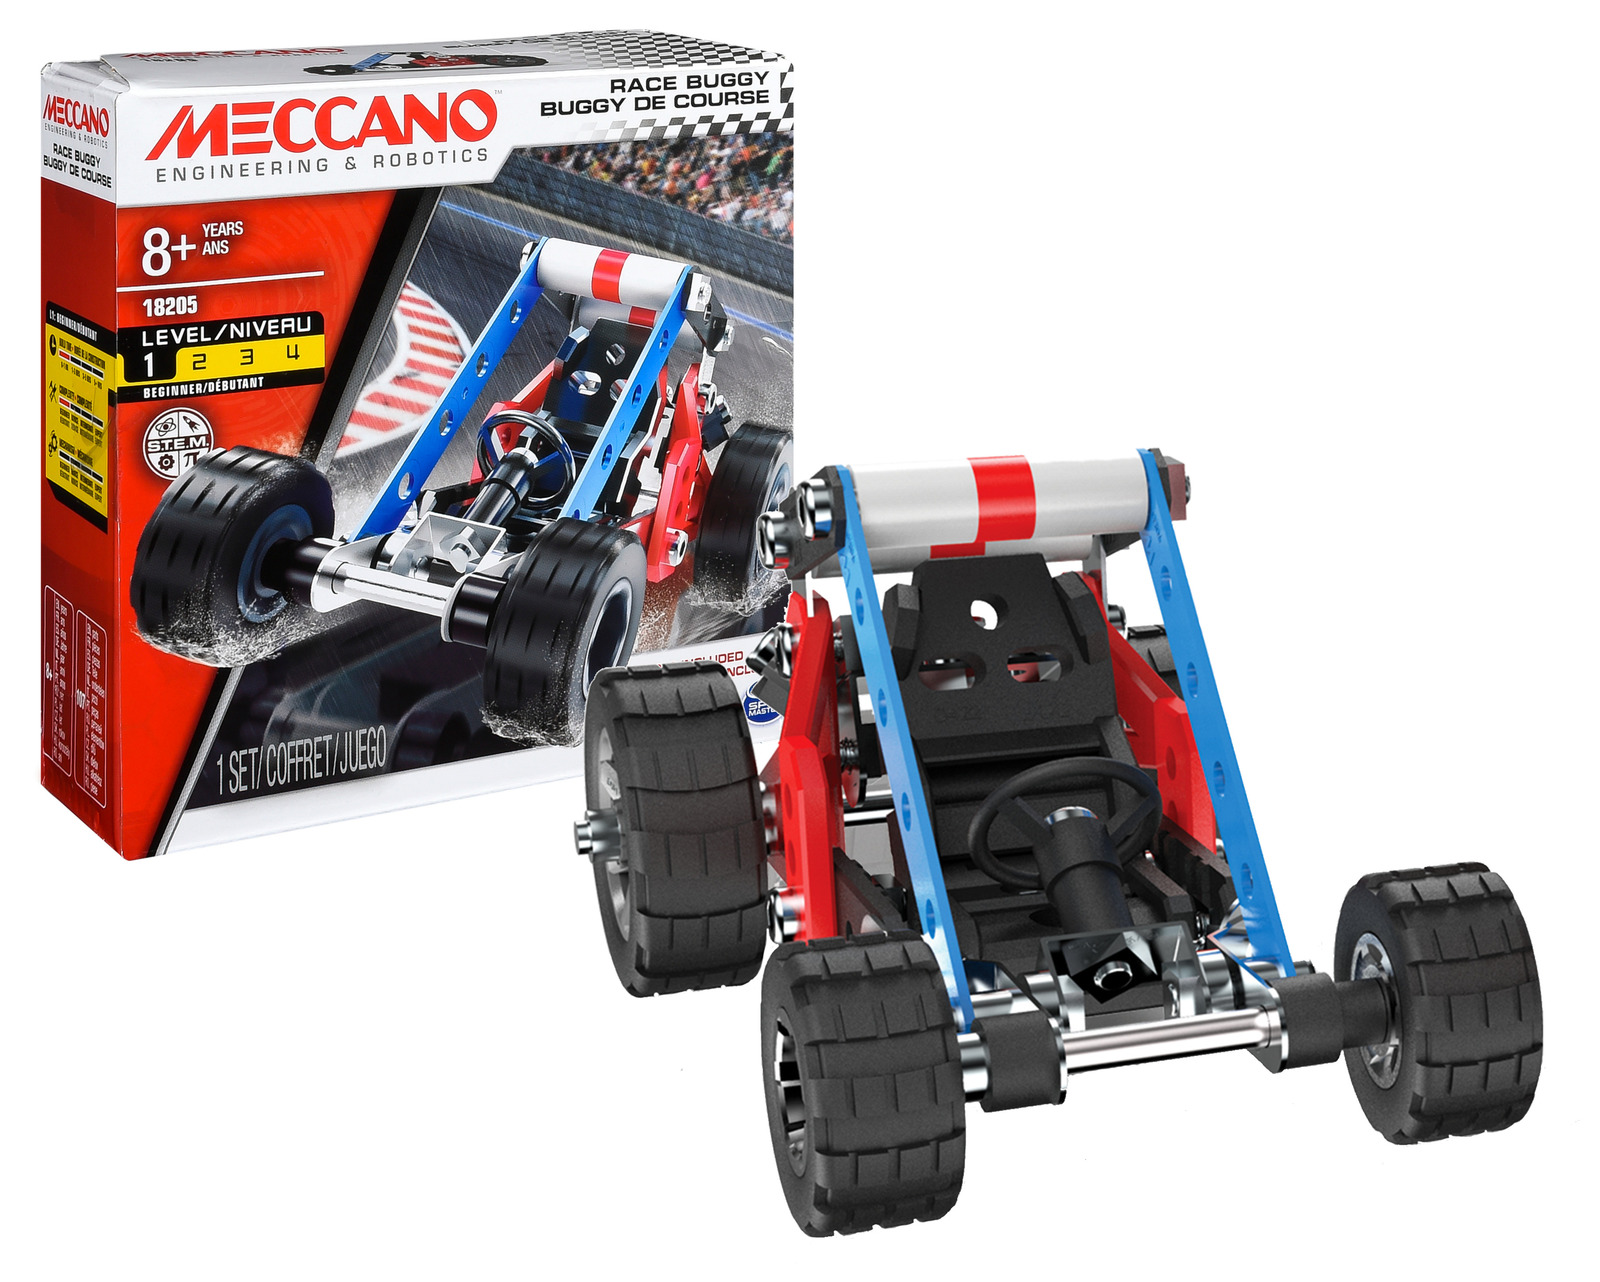 Meccano: Race Buggy Building Kit image